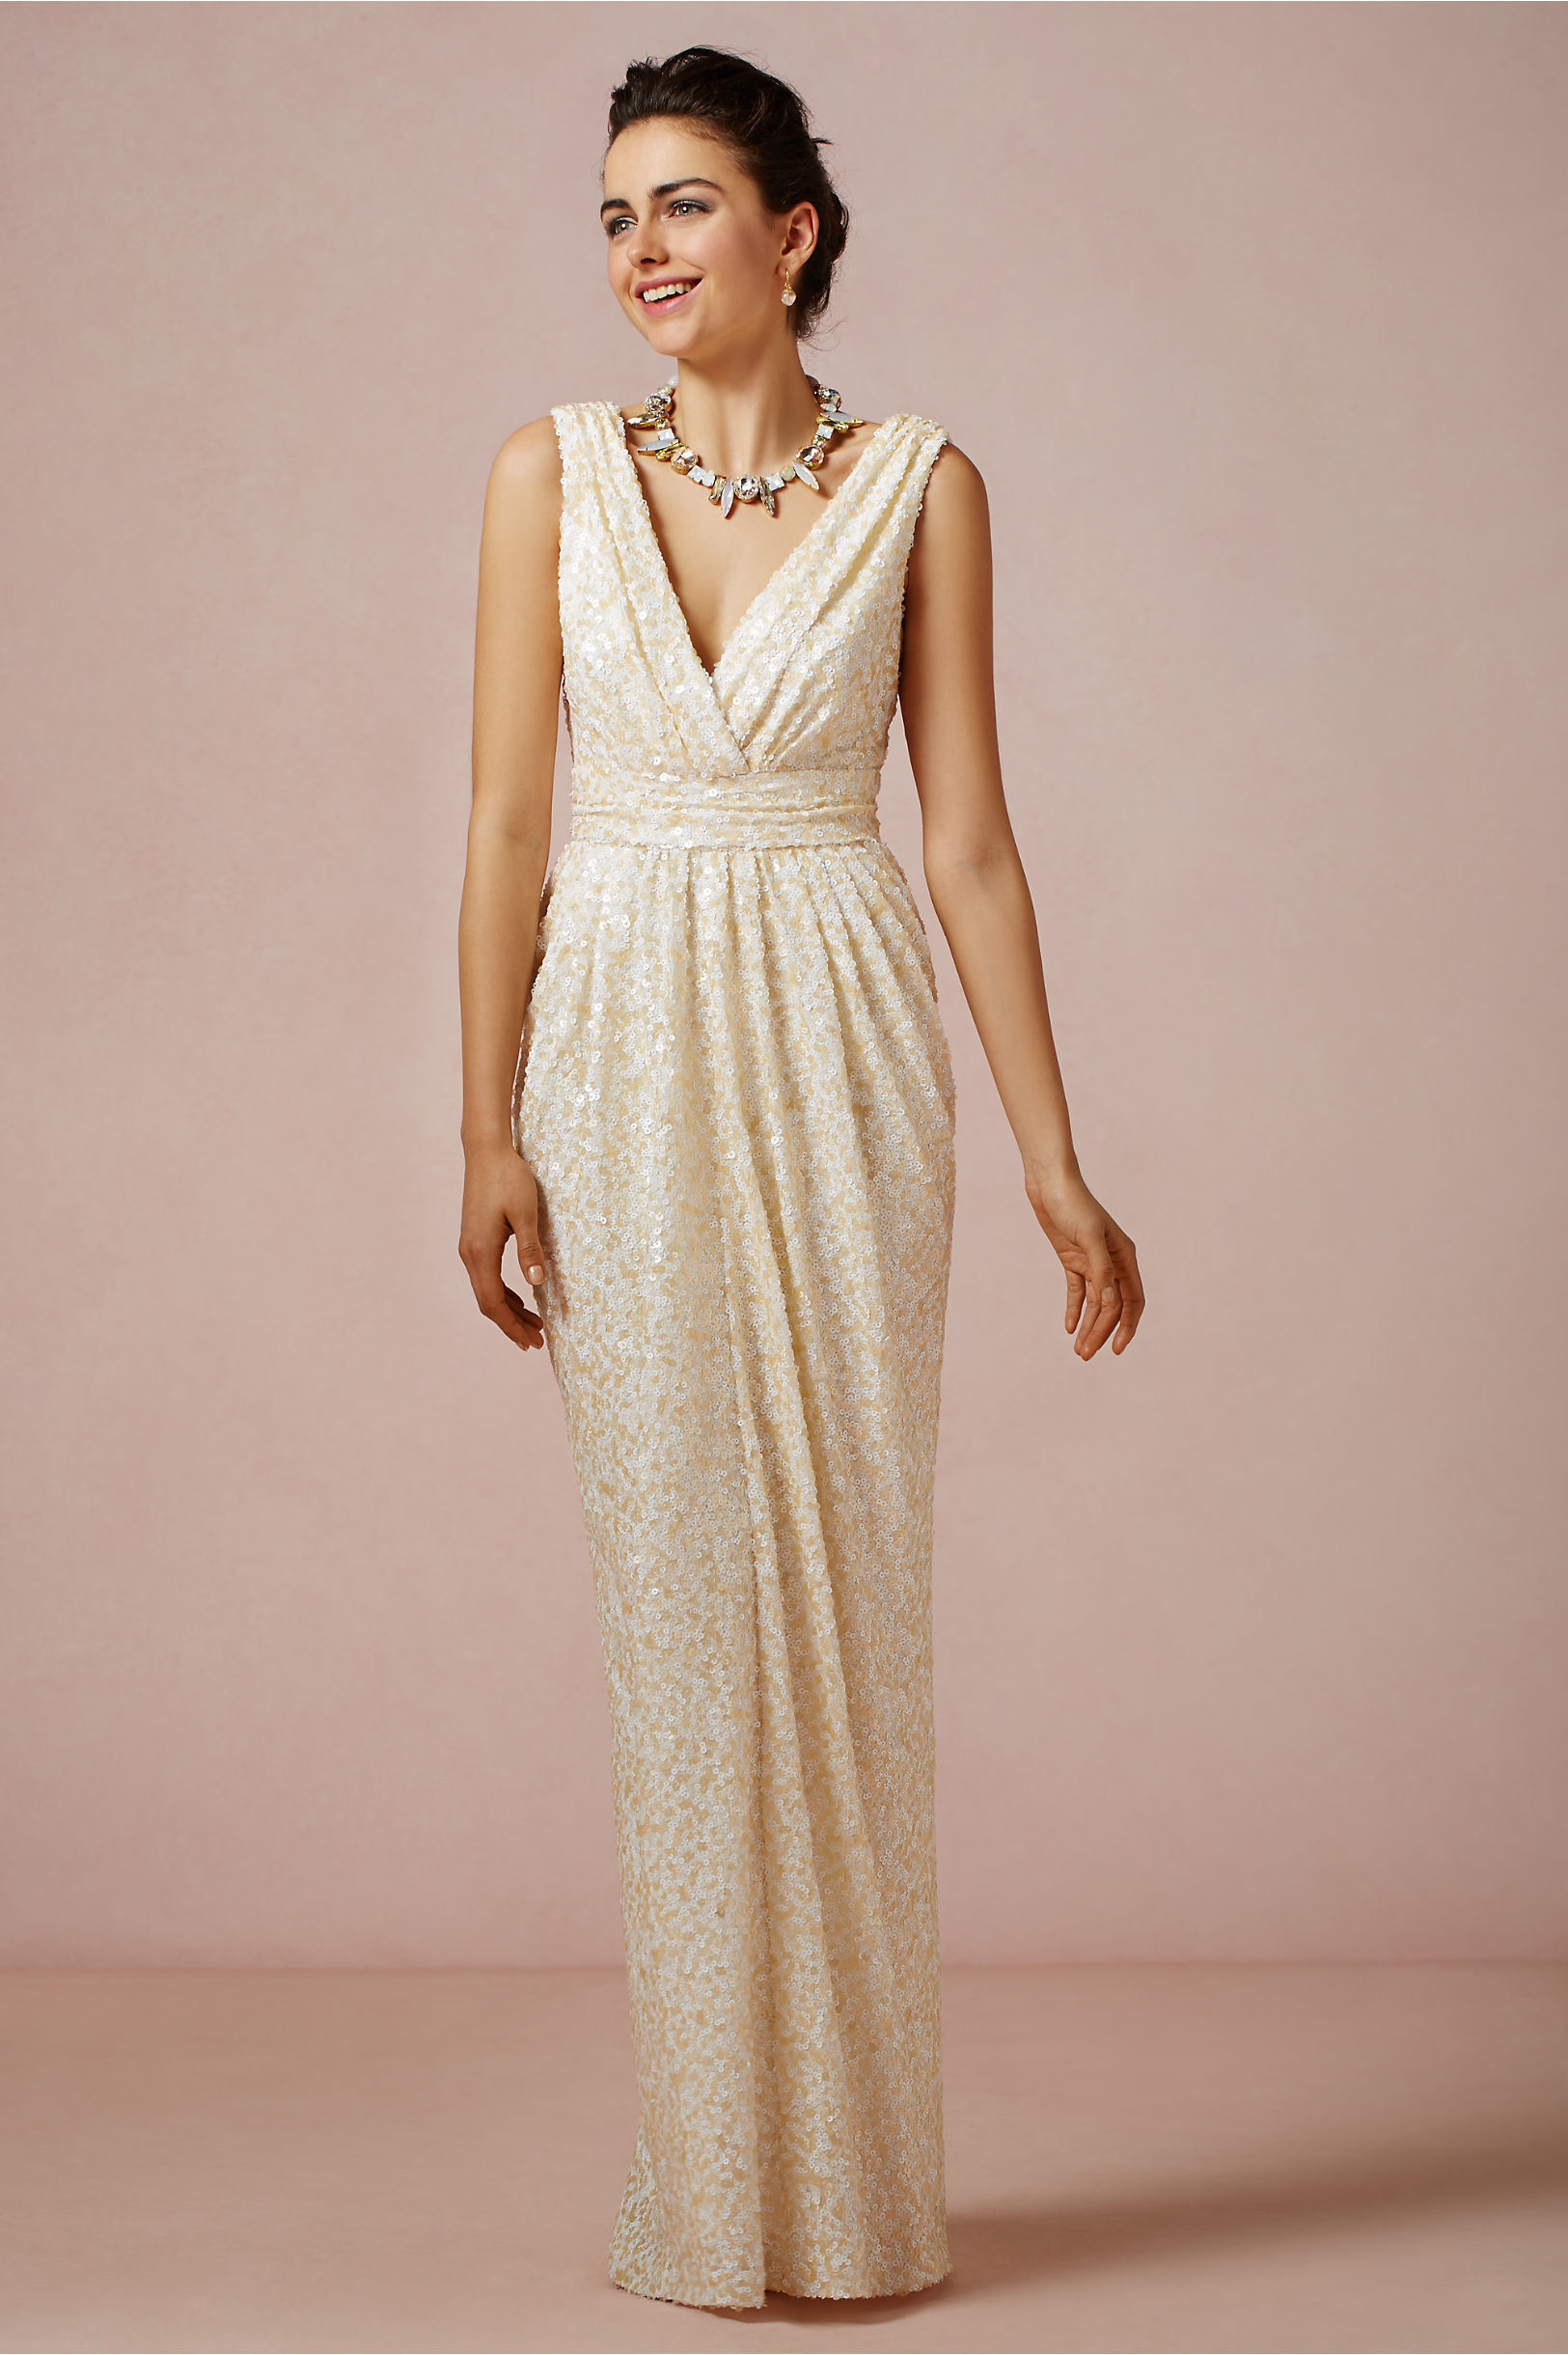 Badgley Mischka Ivory Dress | Weddings Dresses